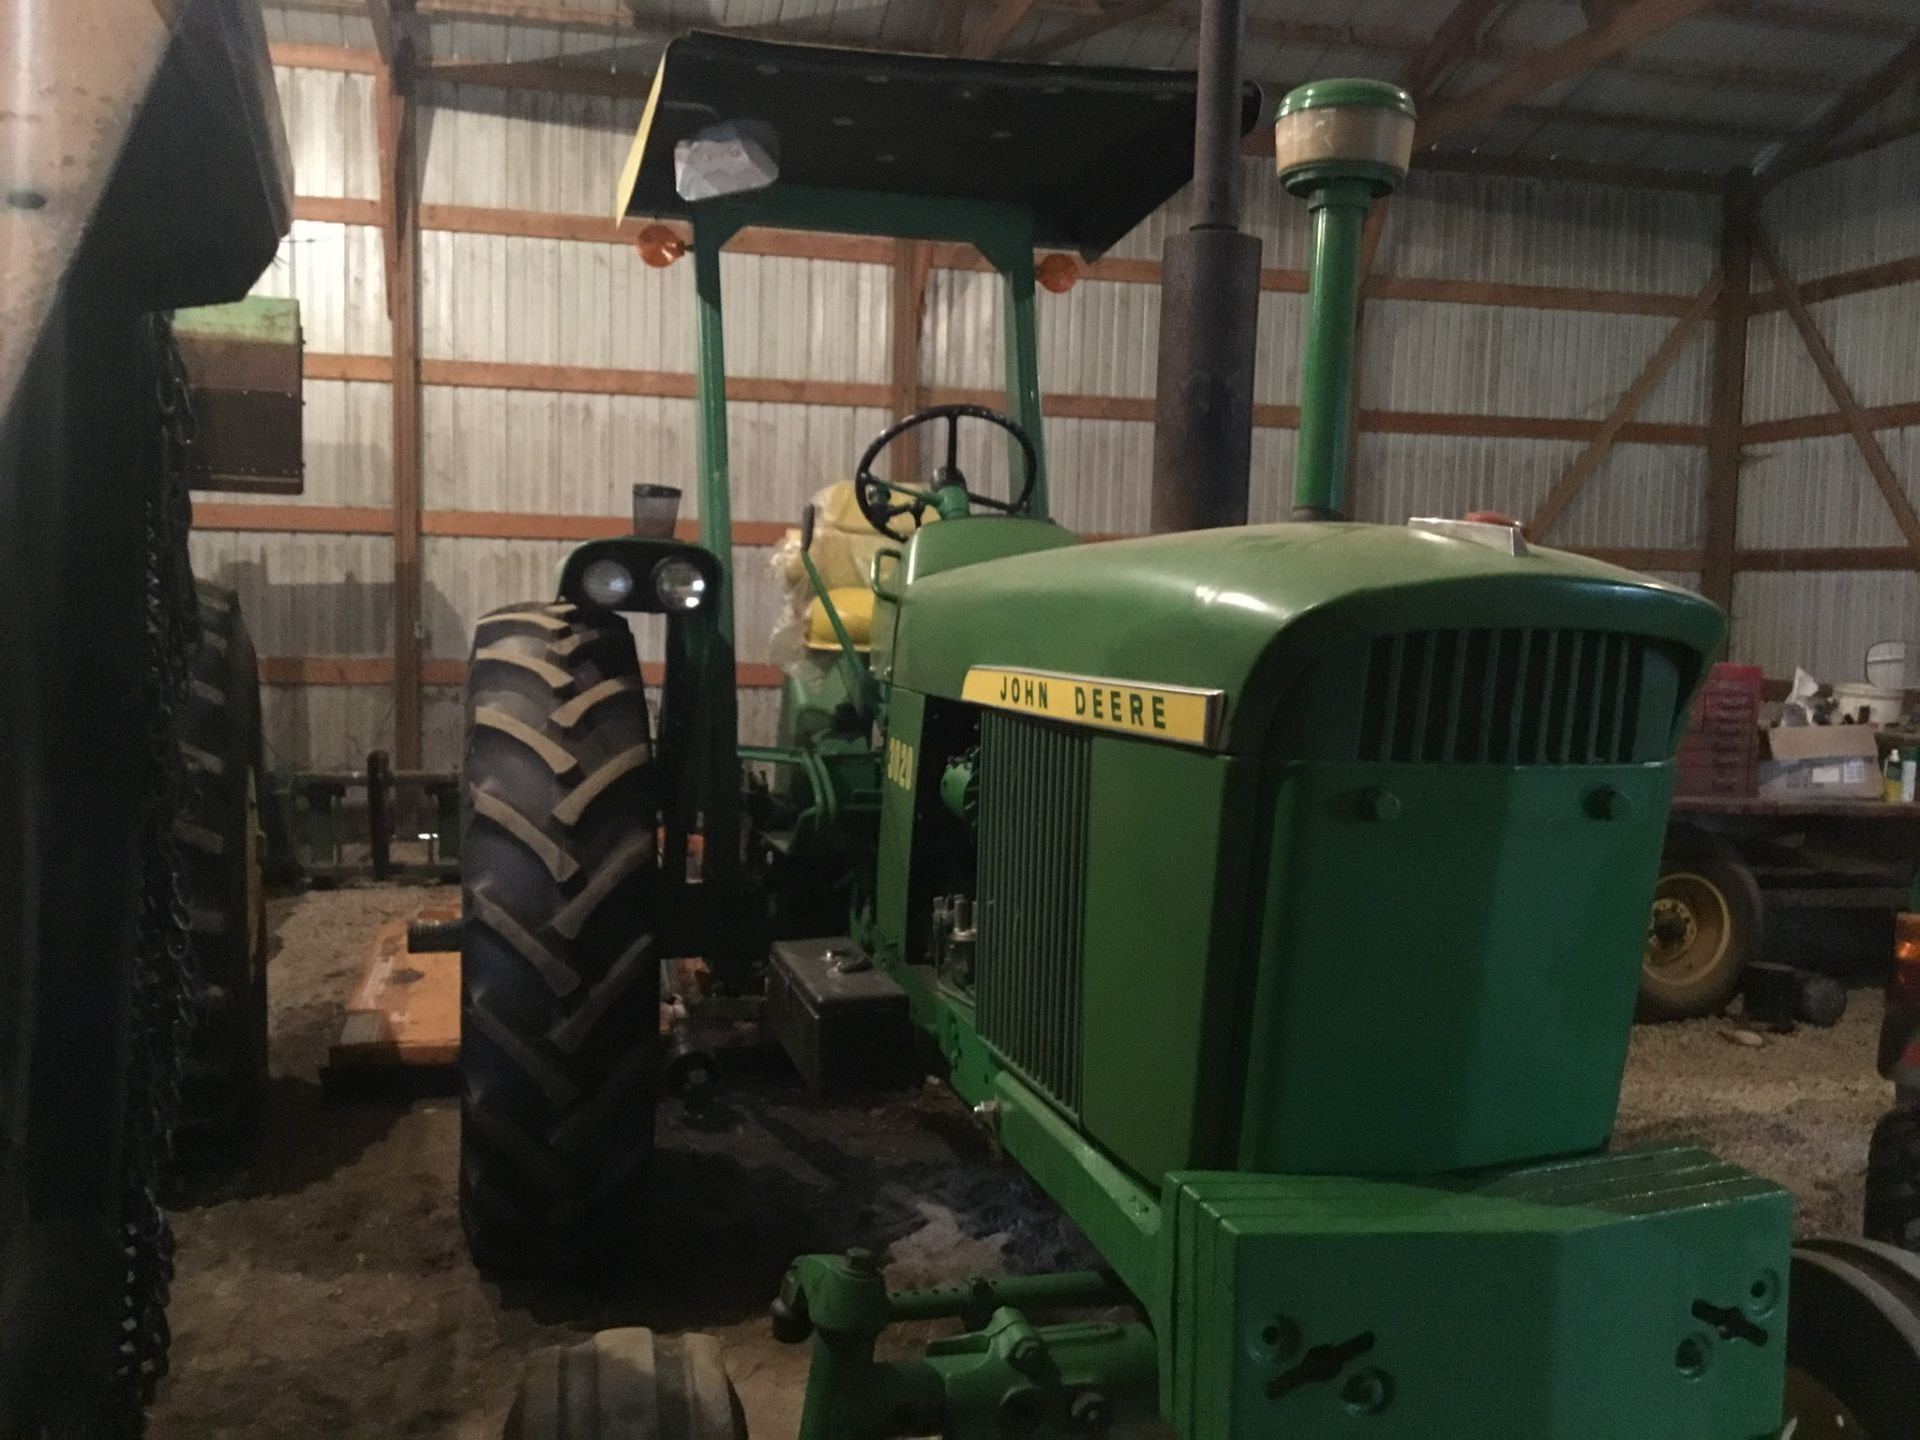 1966 John Deere 3020 Gas, JD Wide Front, Synchro Range, Roll Bar & Canopy, Dual Hydraulic Remotes, - Image 7 of 13